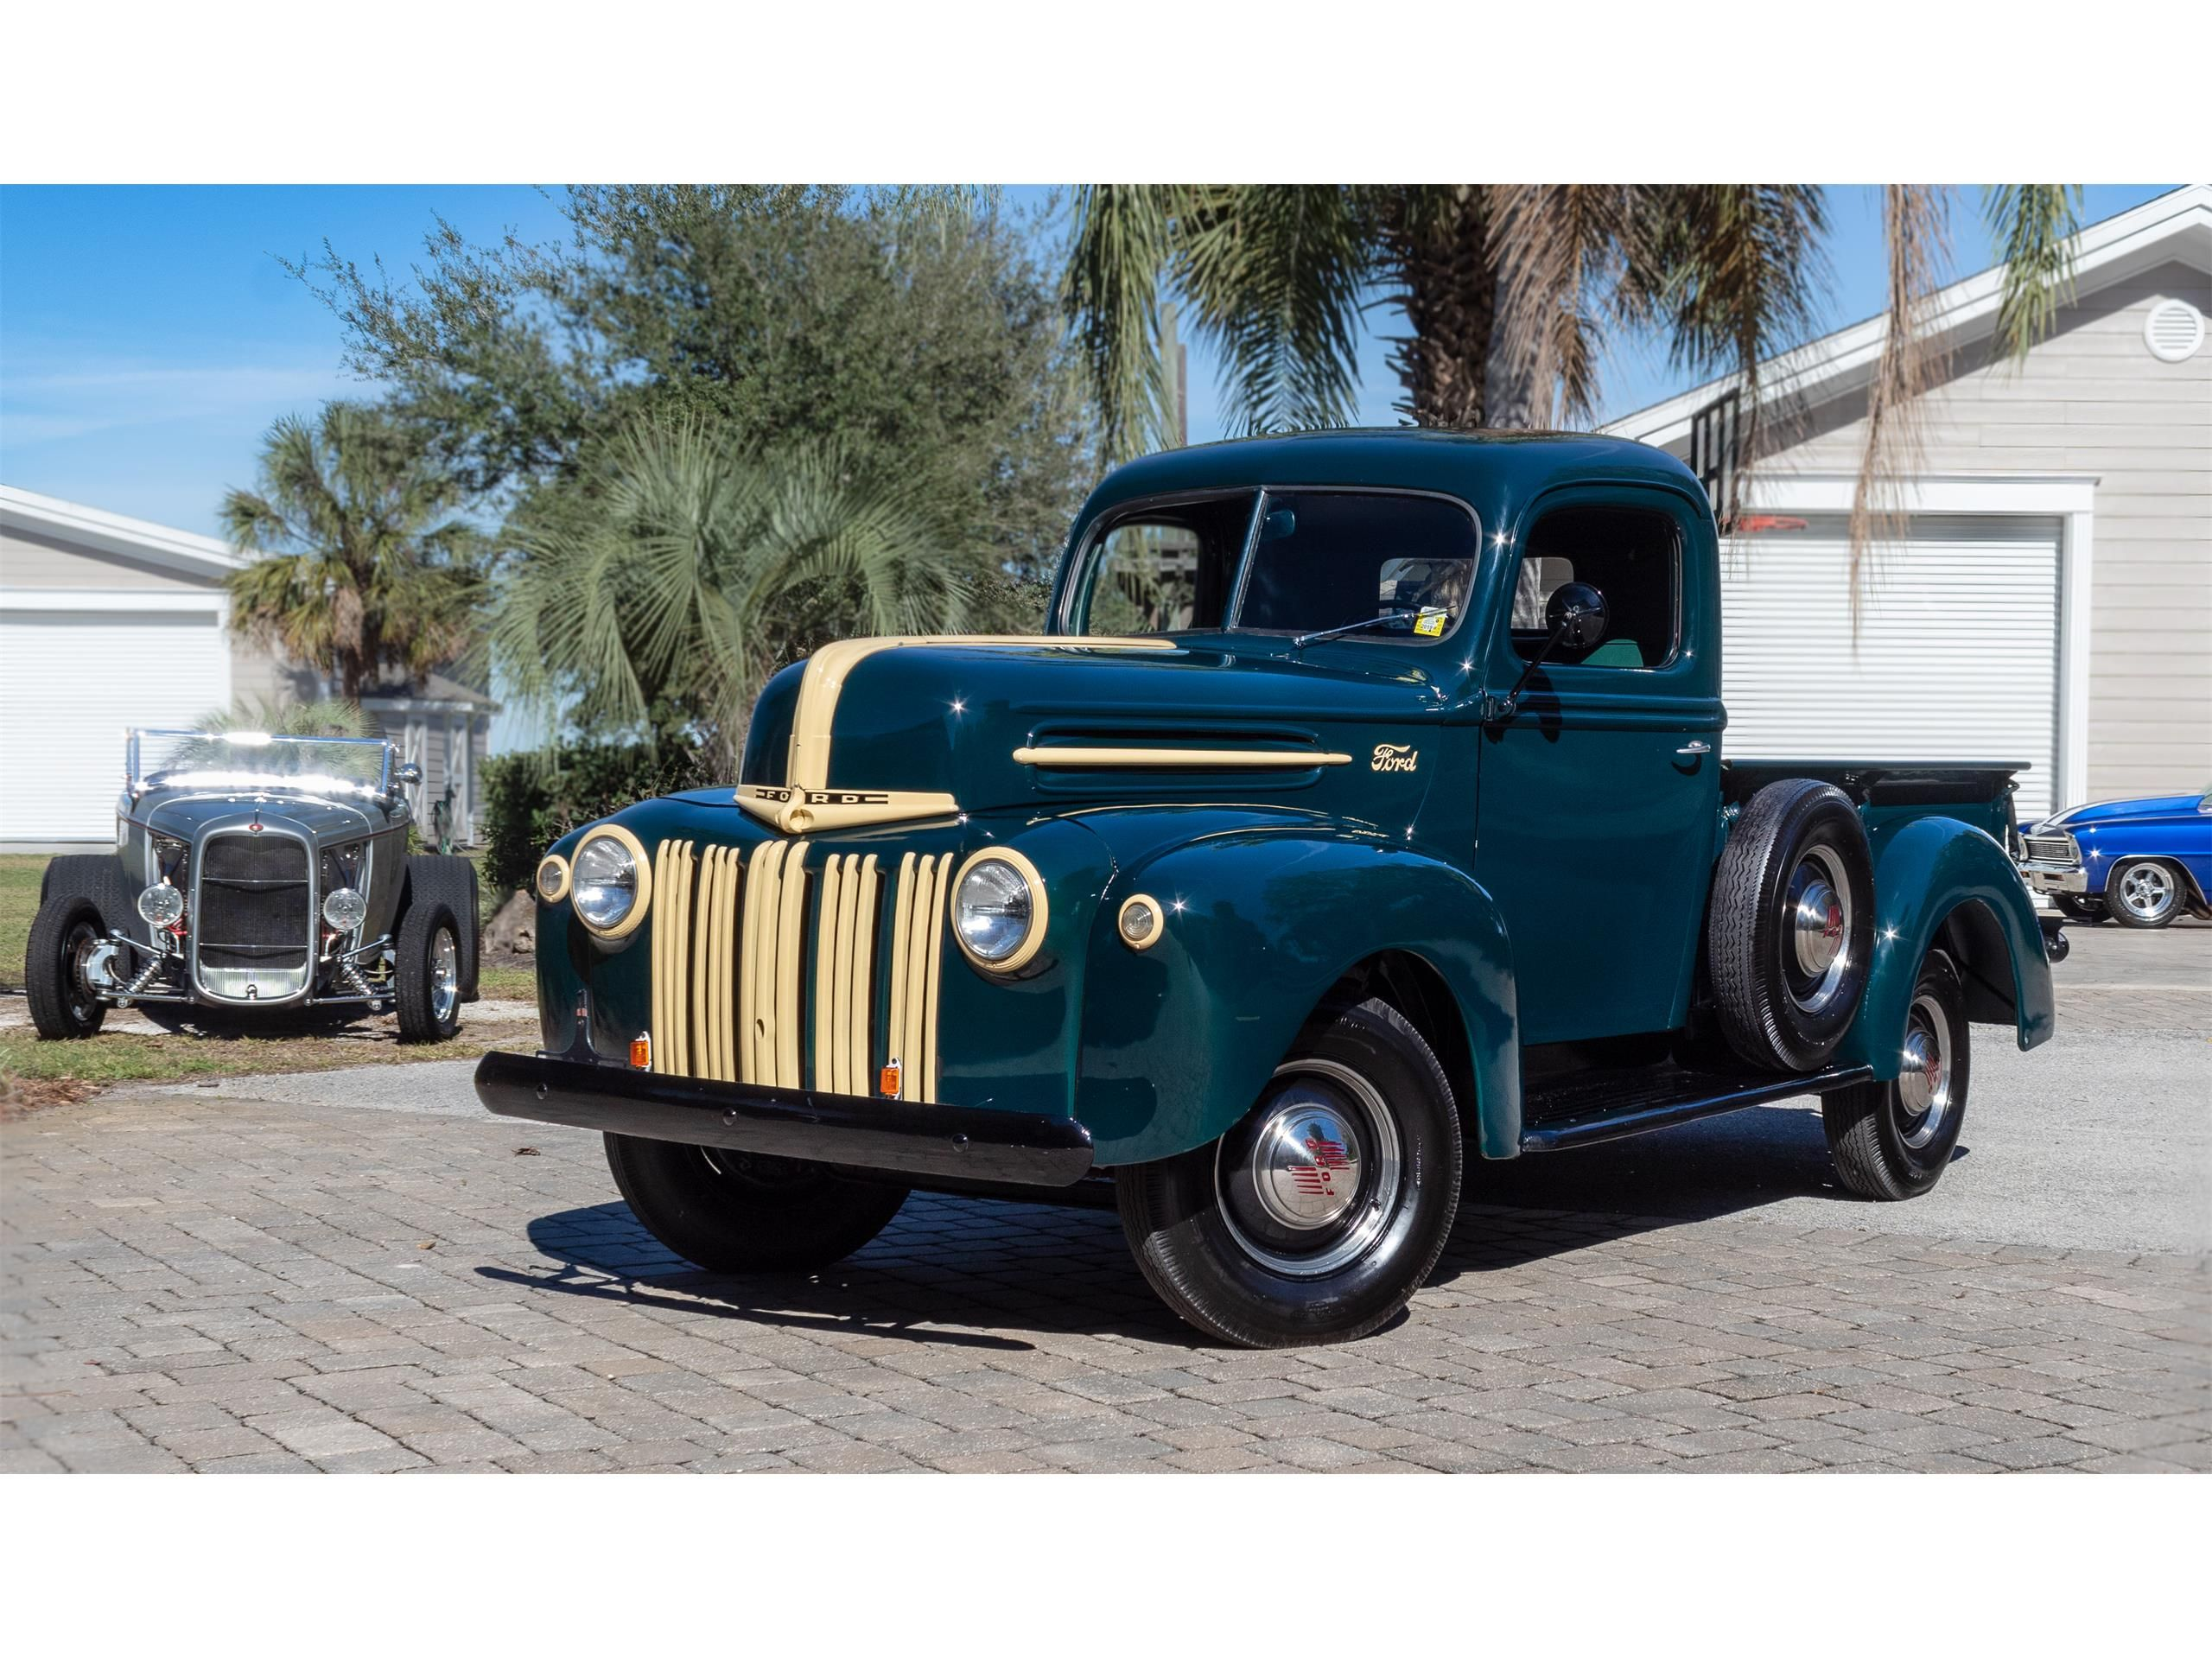 1945 Ford 1 2 Ton Pickup For Sale Listing Id Cc 1168337 Classiccars Com Driveyourdream Classictruck Fo Classic Trucks Old Trucks Old Trucks For Sale